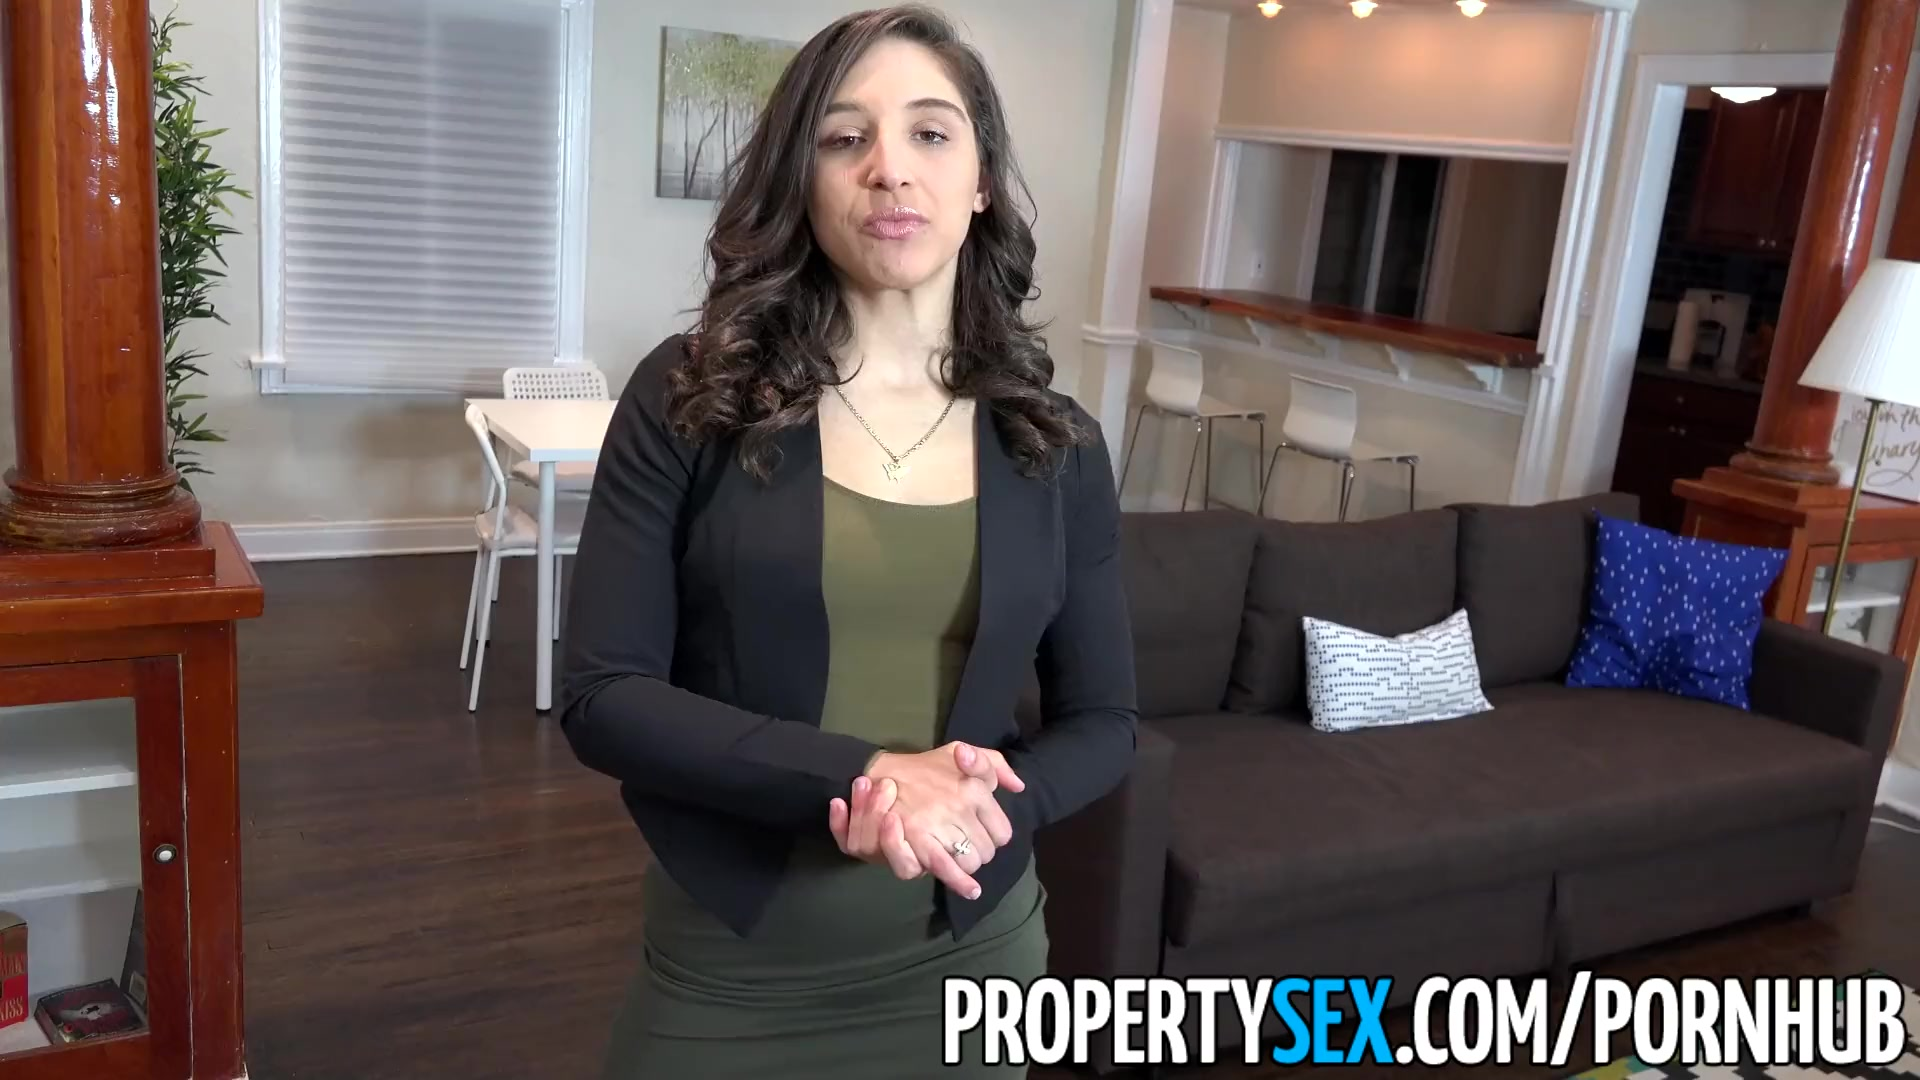 Propertysex good looking agent fucks home owner for listing 4